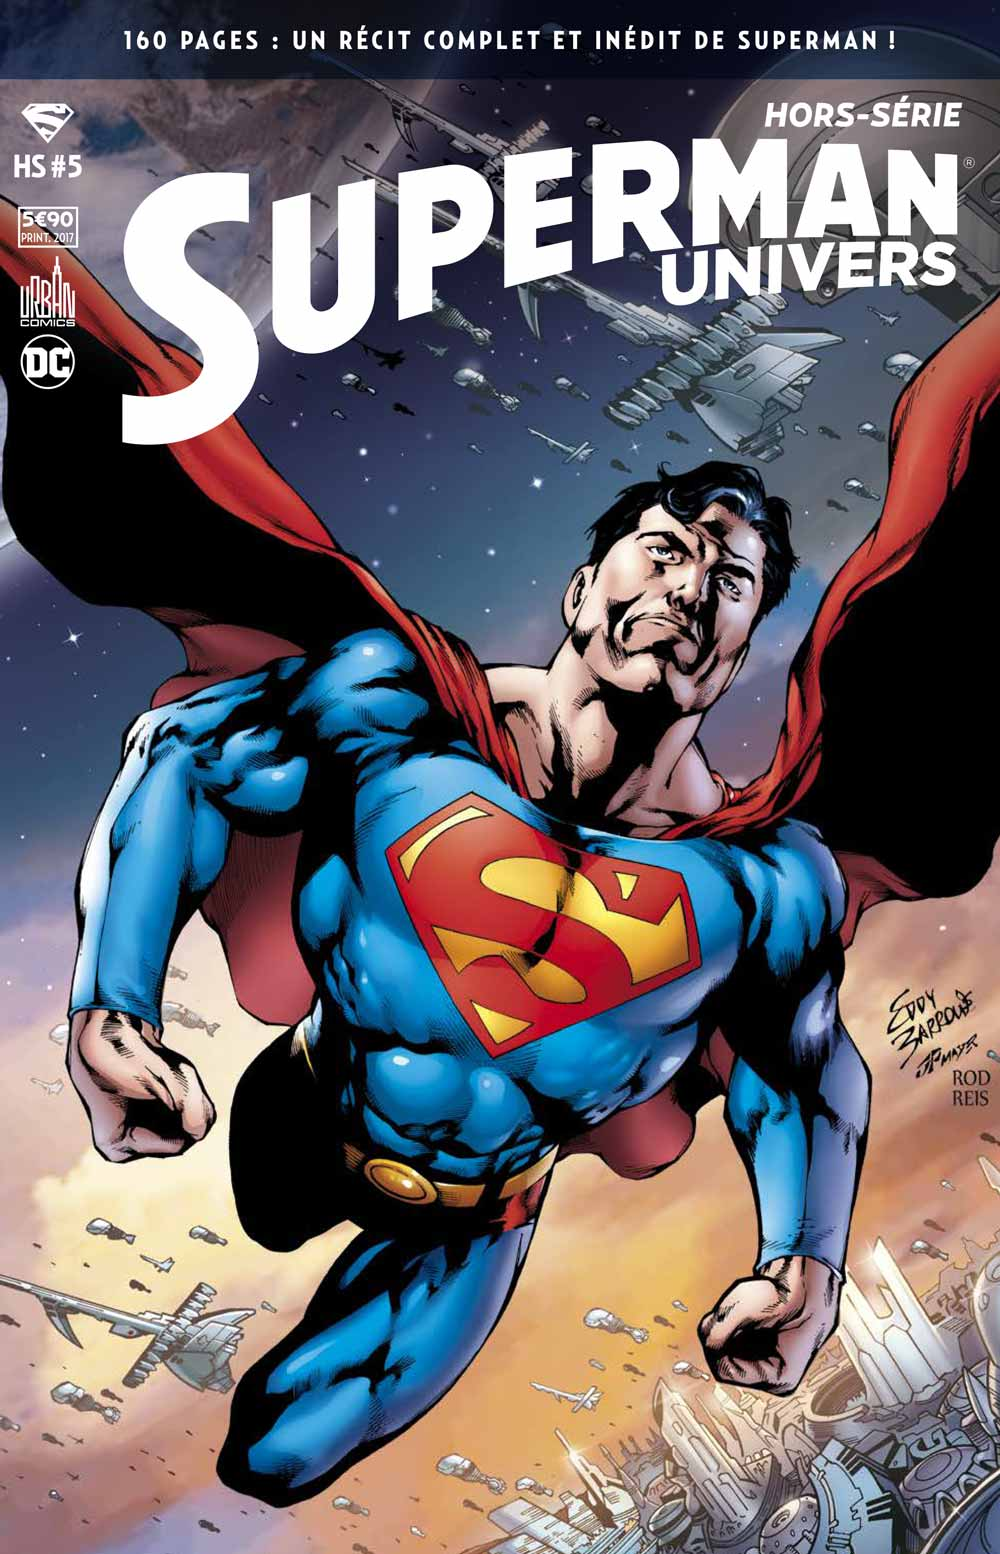 superman-univers-hors-serie-5-44260